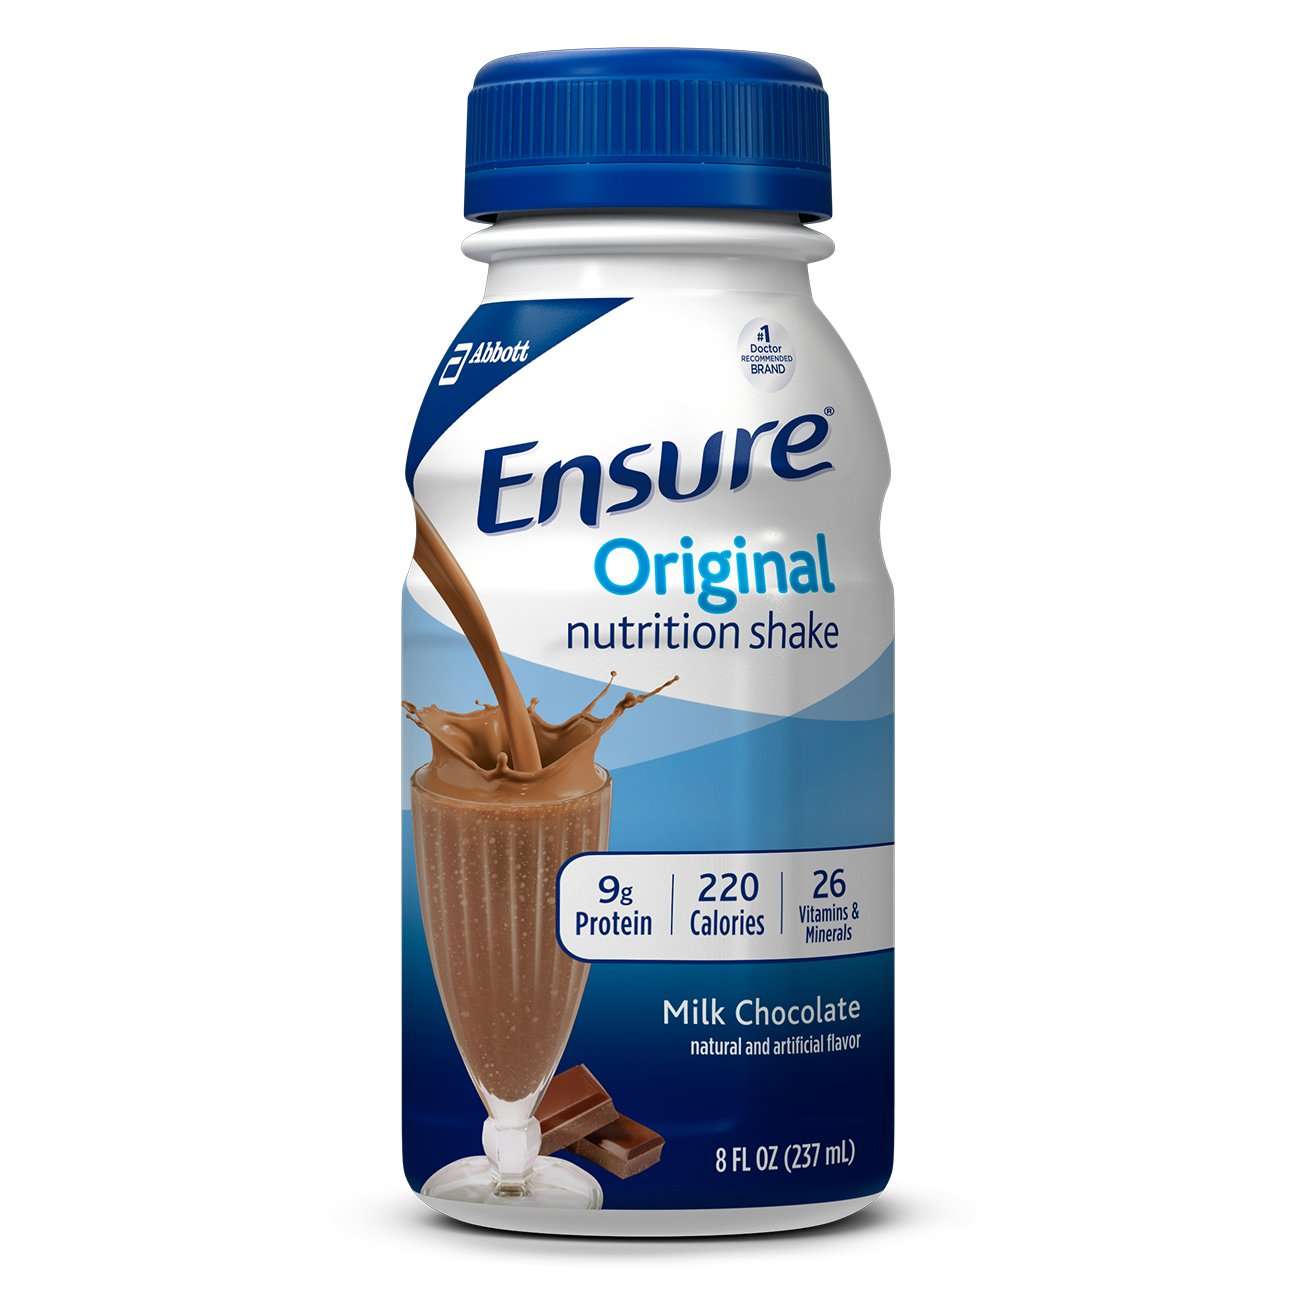 Ensure Original Nutrition Shake with 9 grams of protein, Meal Replacement Shakes, Milk Chocolate, 8 fl oz, 24 Count by Ensure Original